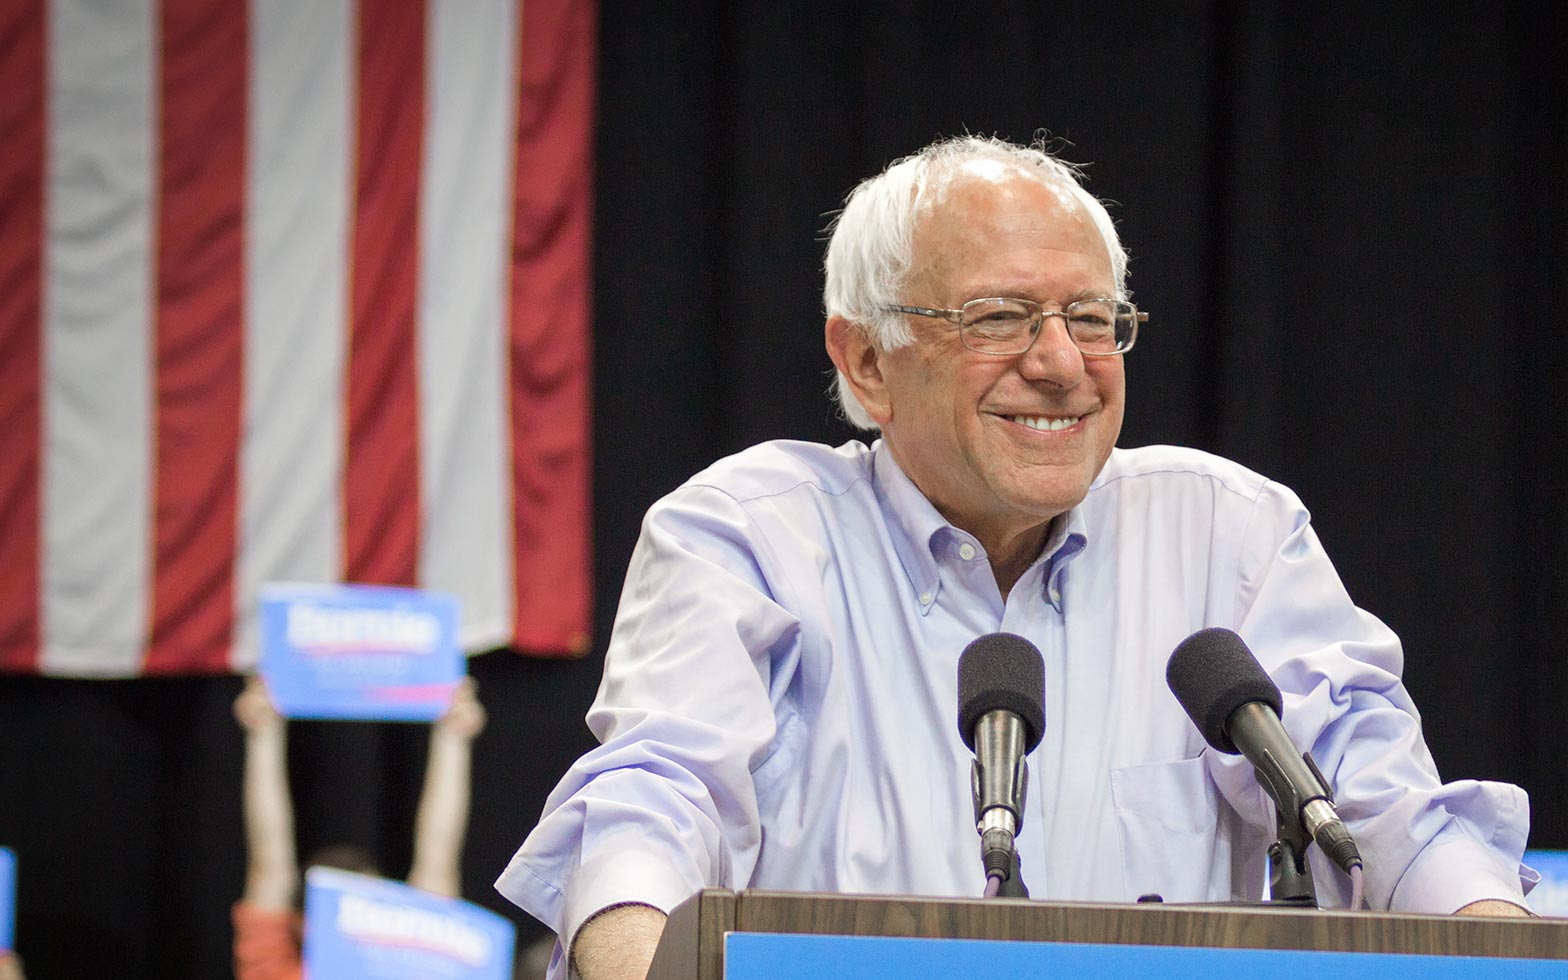 Feel the Bern or Burned Out? Twitter Reacts to Bernie Sanders' 2020 Bid